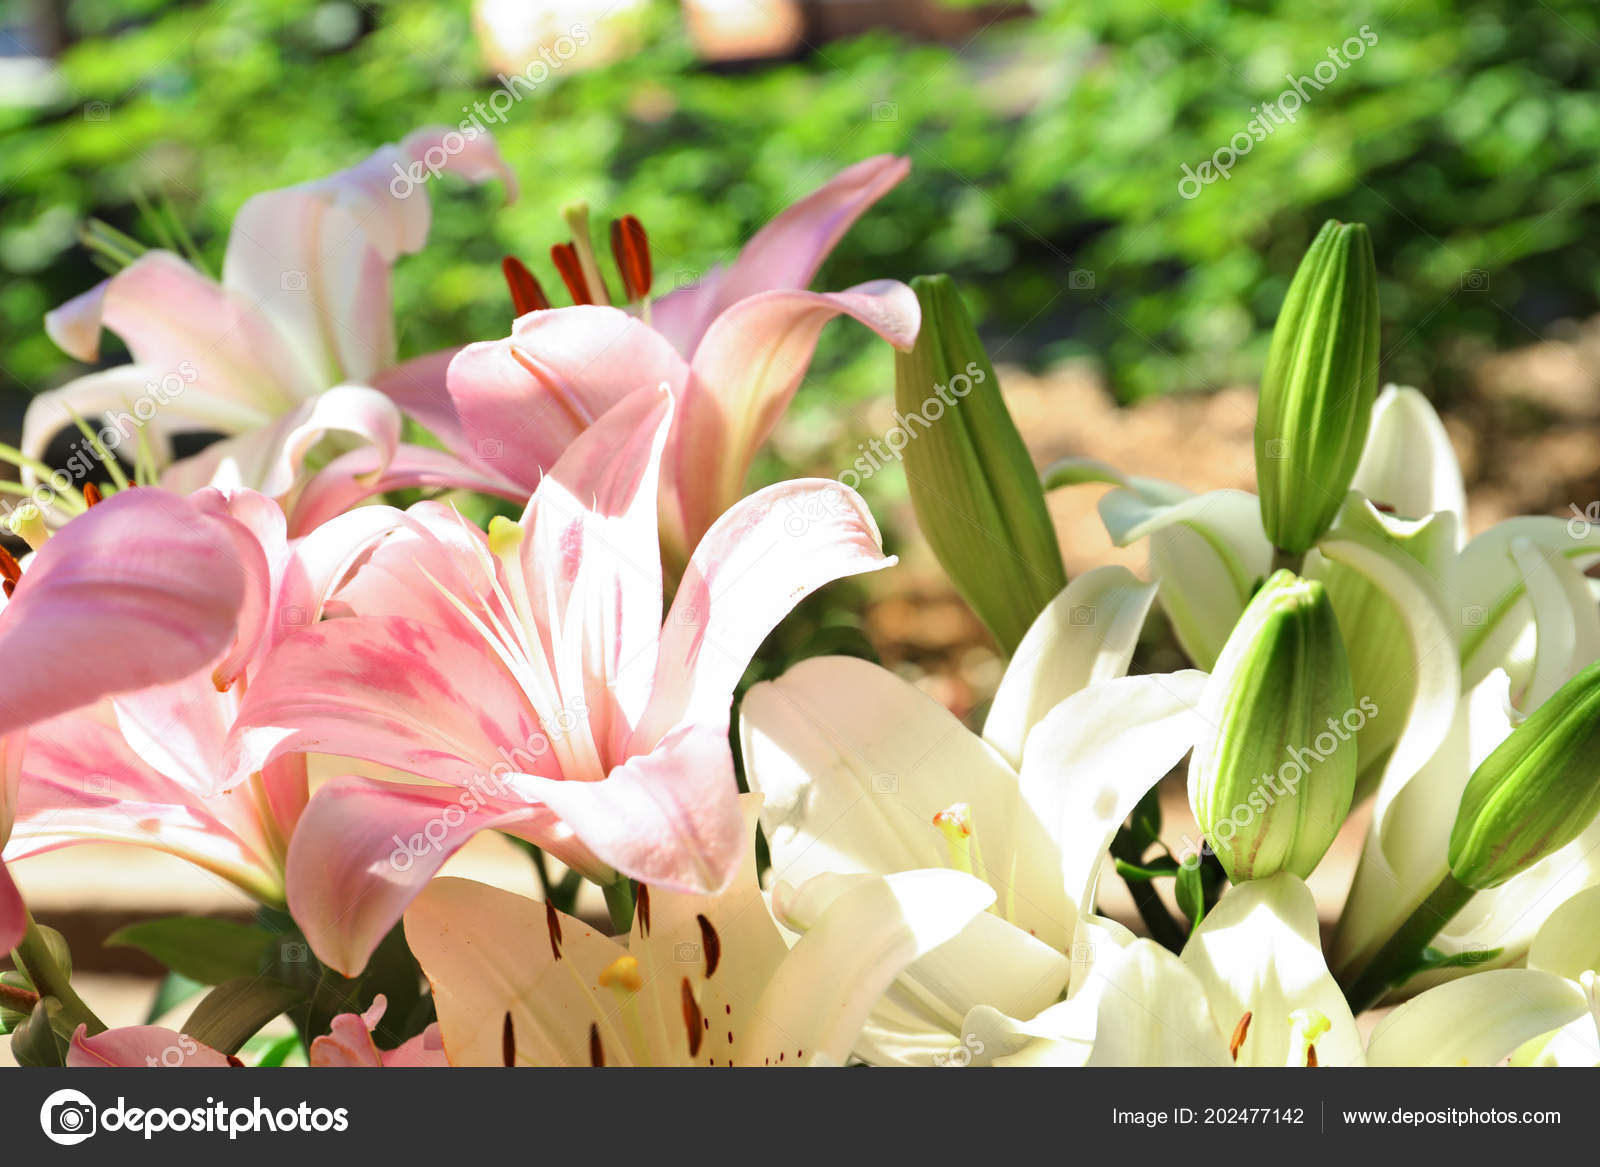 Beautiful Blooming Lily Flowers Garden Closeup Stock Photo